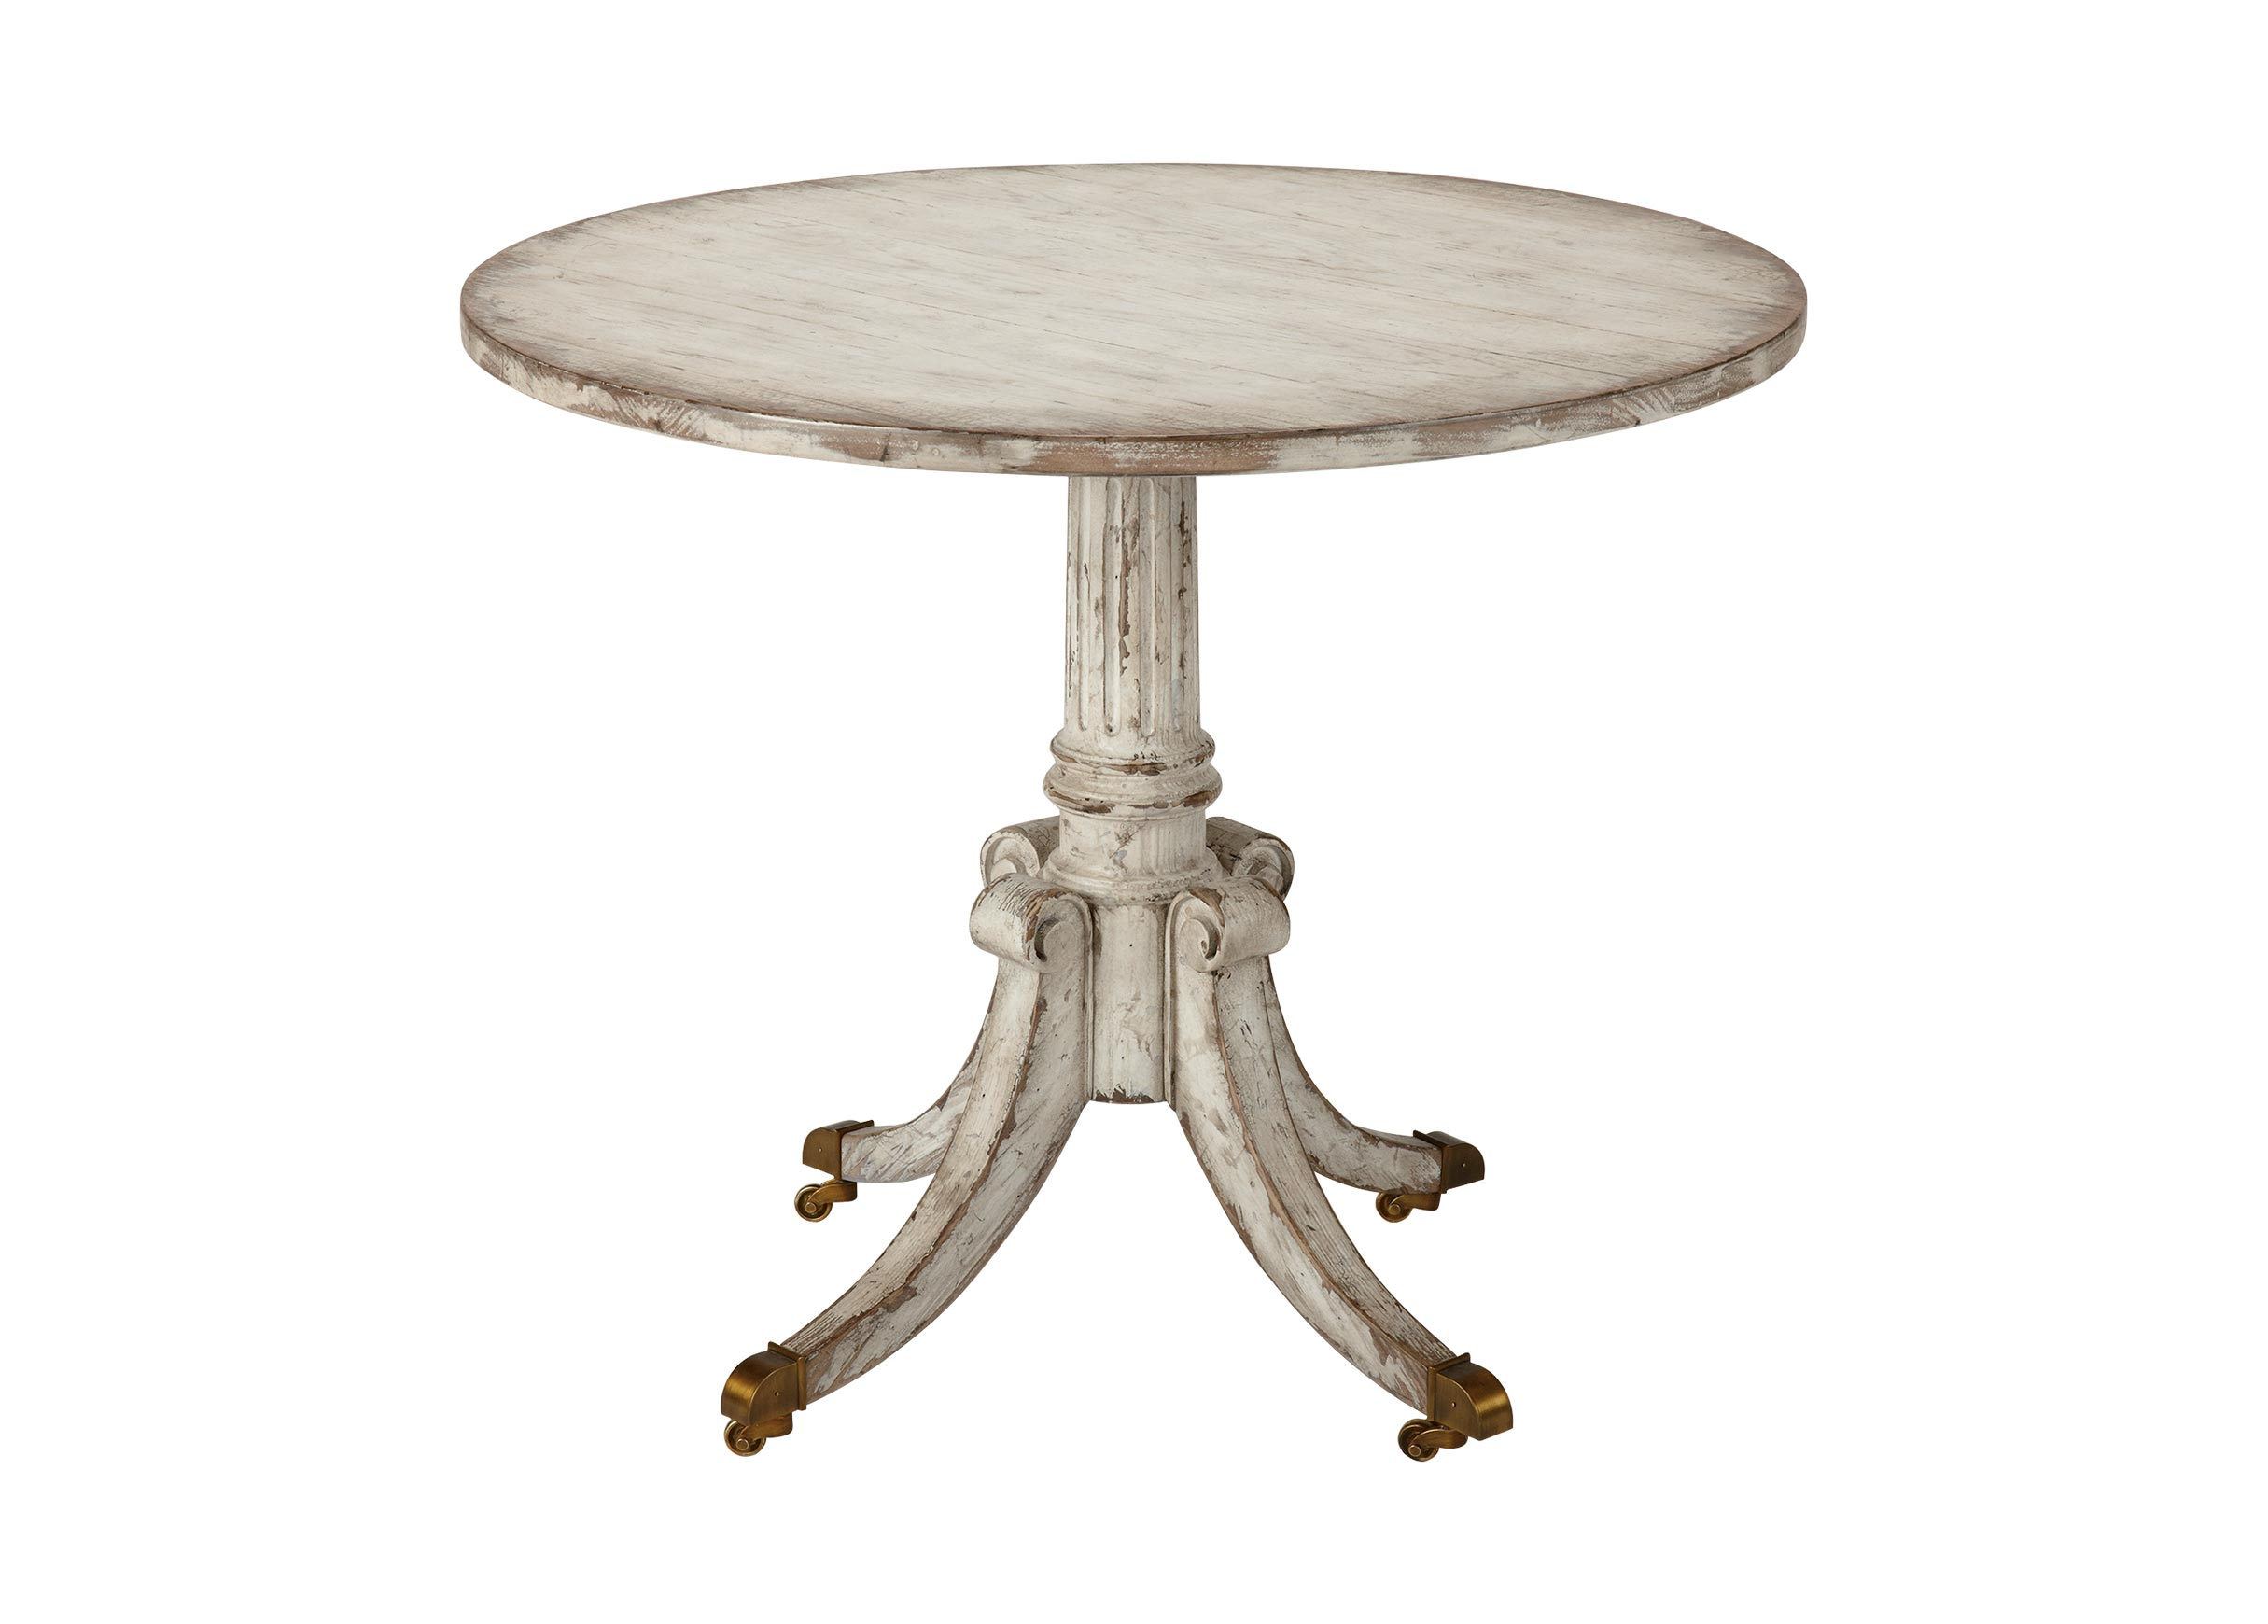 ethan allen pedestal end table tops front ballan accent vienna round side tables oil rubbed bronze west elm brass lamp outside patio umbrellas target glass cabinet entryway